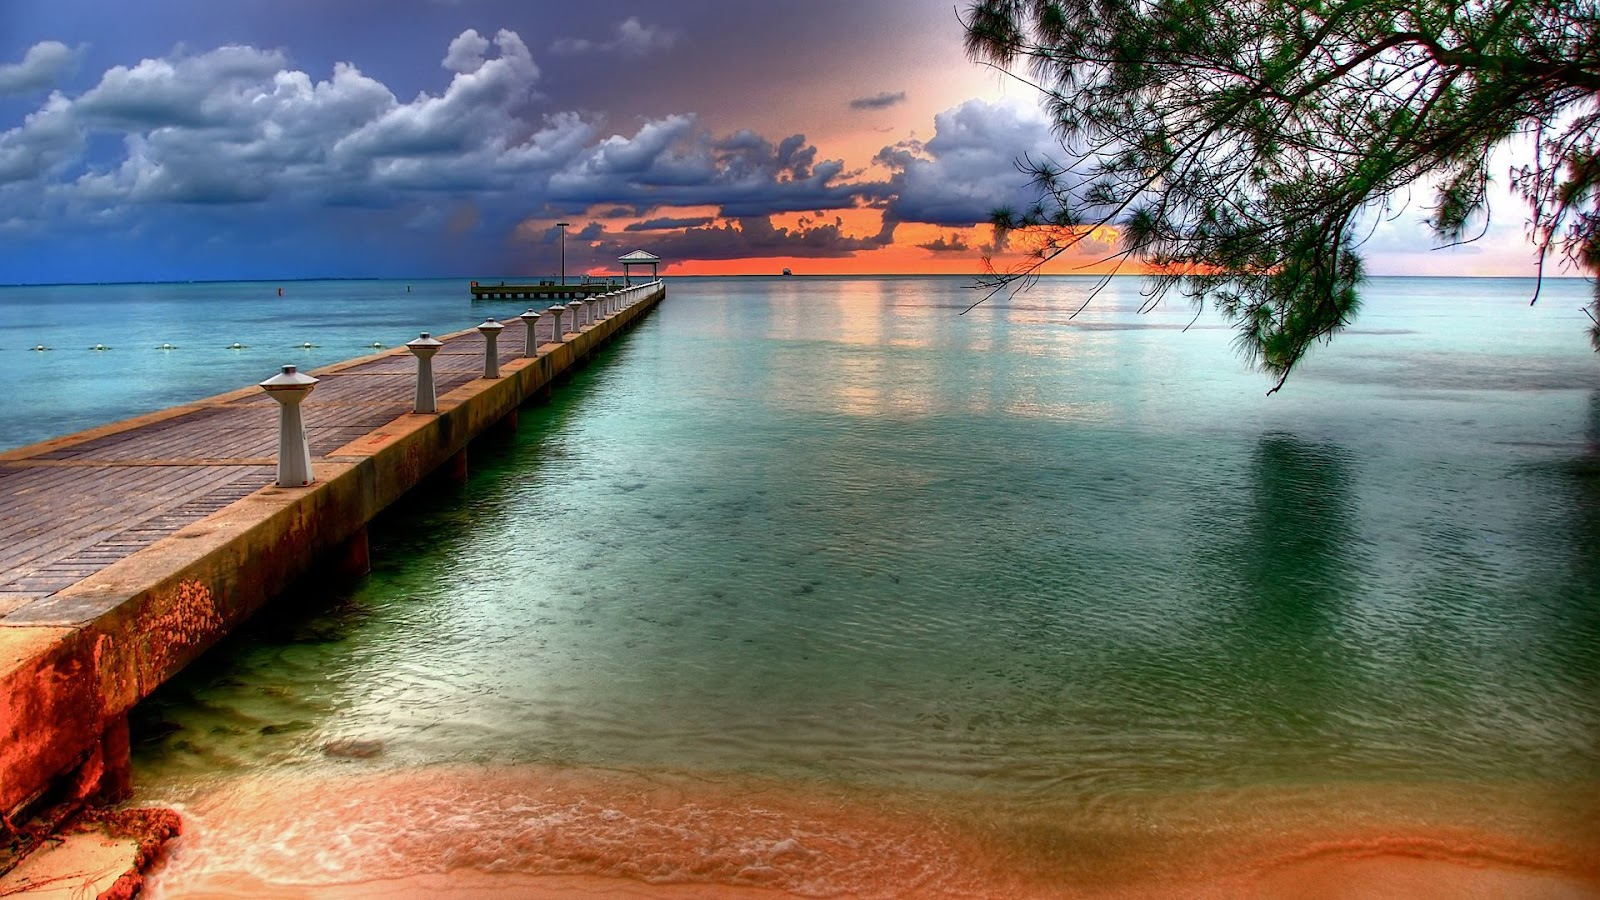 Must see Wallpaper Laptop Sunset - hd-romantic-place-for-lover-nature-background-wallpaper-for-laptop-widescreen  Trends_646882.jpg